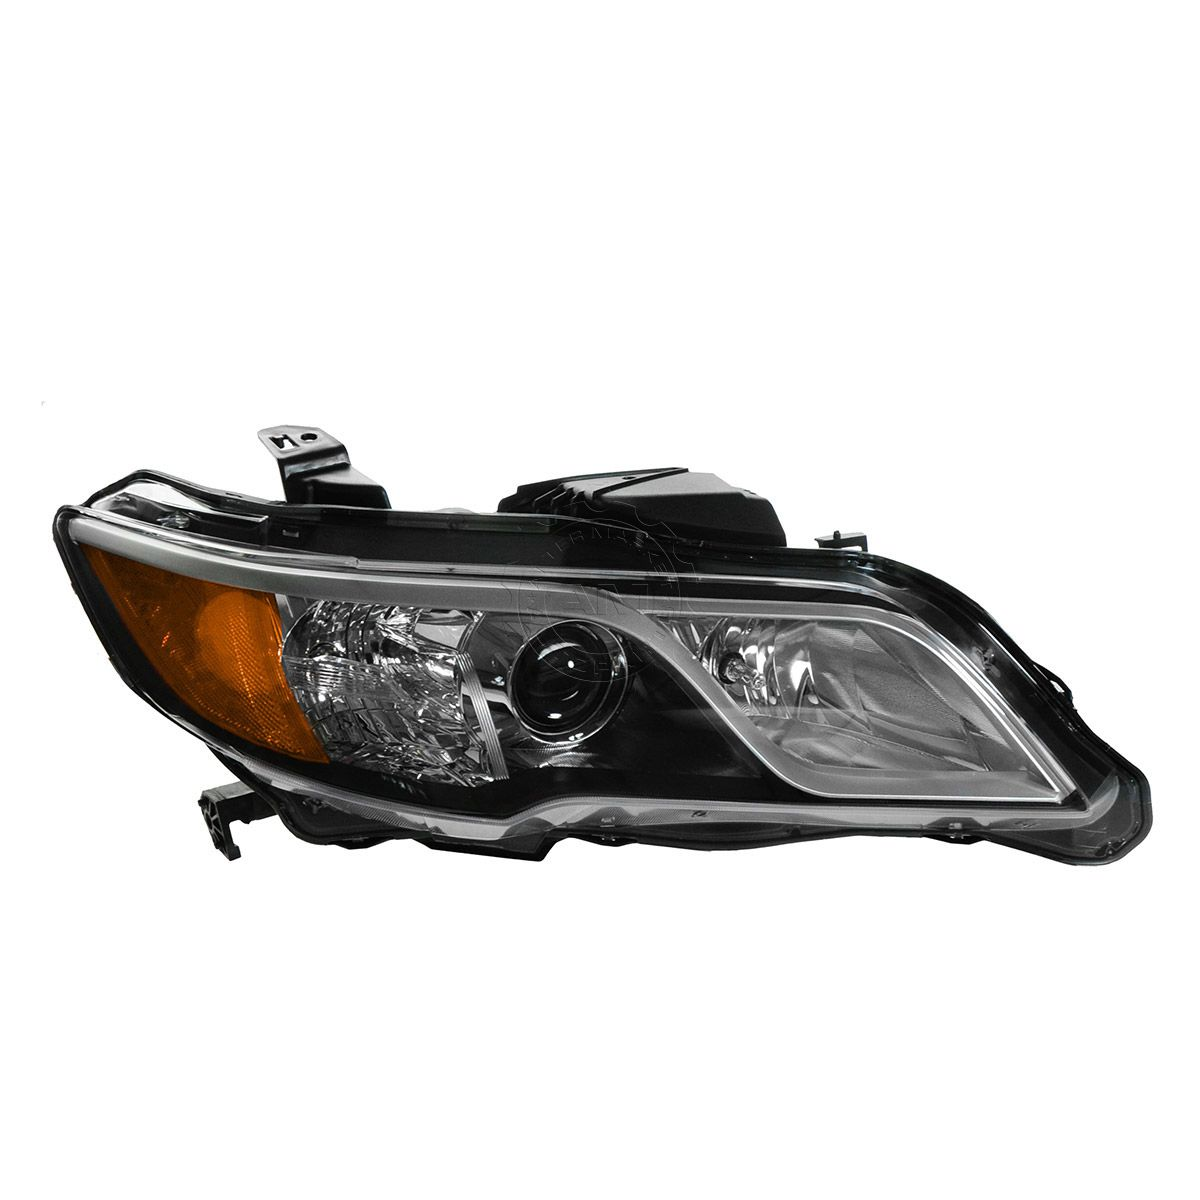 Headlight Headlamp Halogen Passenger Side Right RH For 13